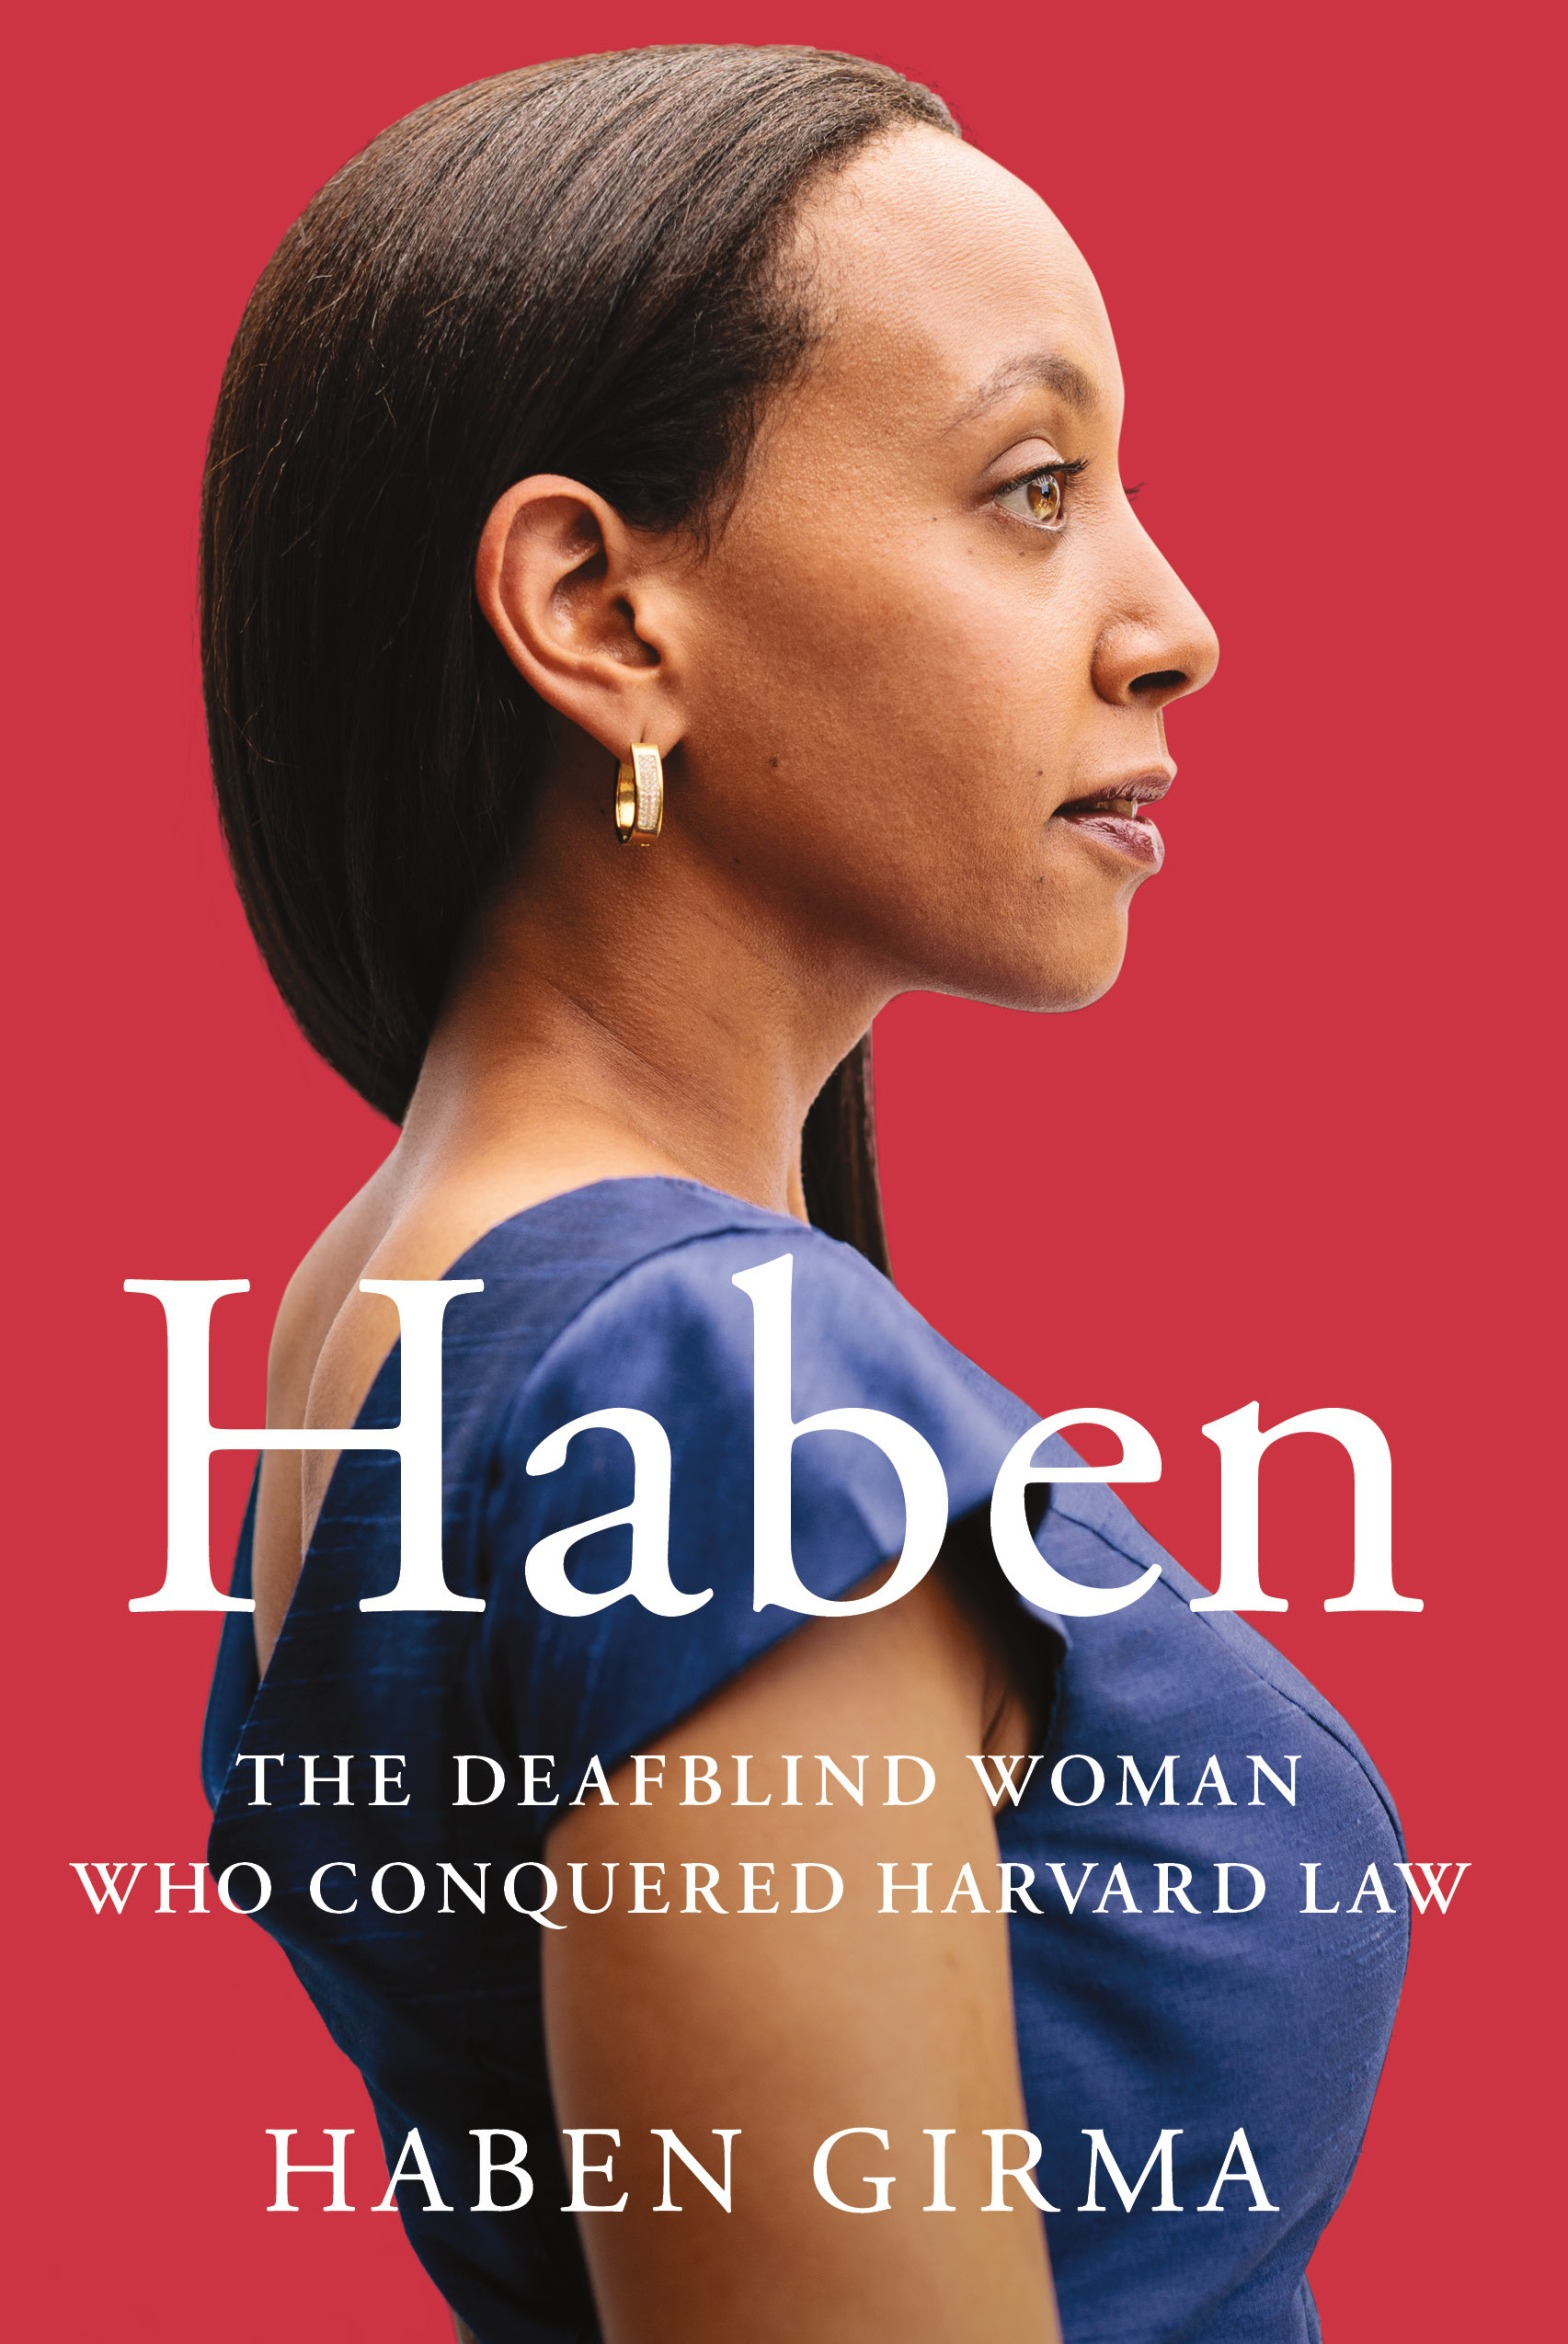 "Book cover. Against a red background, Haben, a Black woman wearing a blue dress and a gold hoop earring, stands in profile facing right. White text across the bottom half of the cover reads, ""Haben: The Deafblind Woman Who Conquered Harvard Law. Haben Girma."""